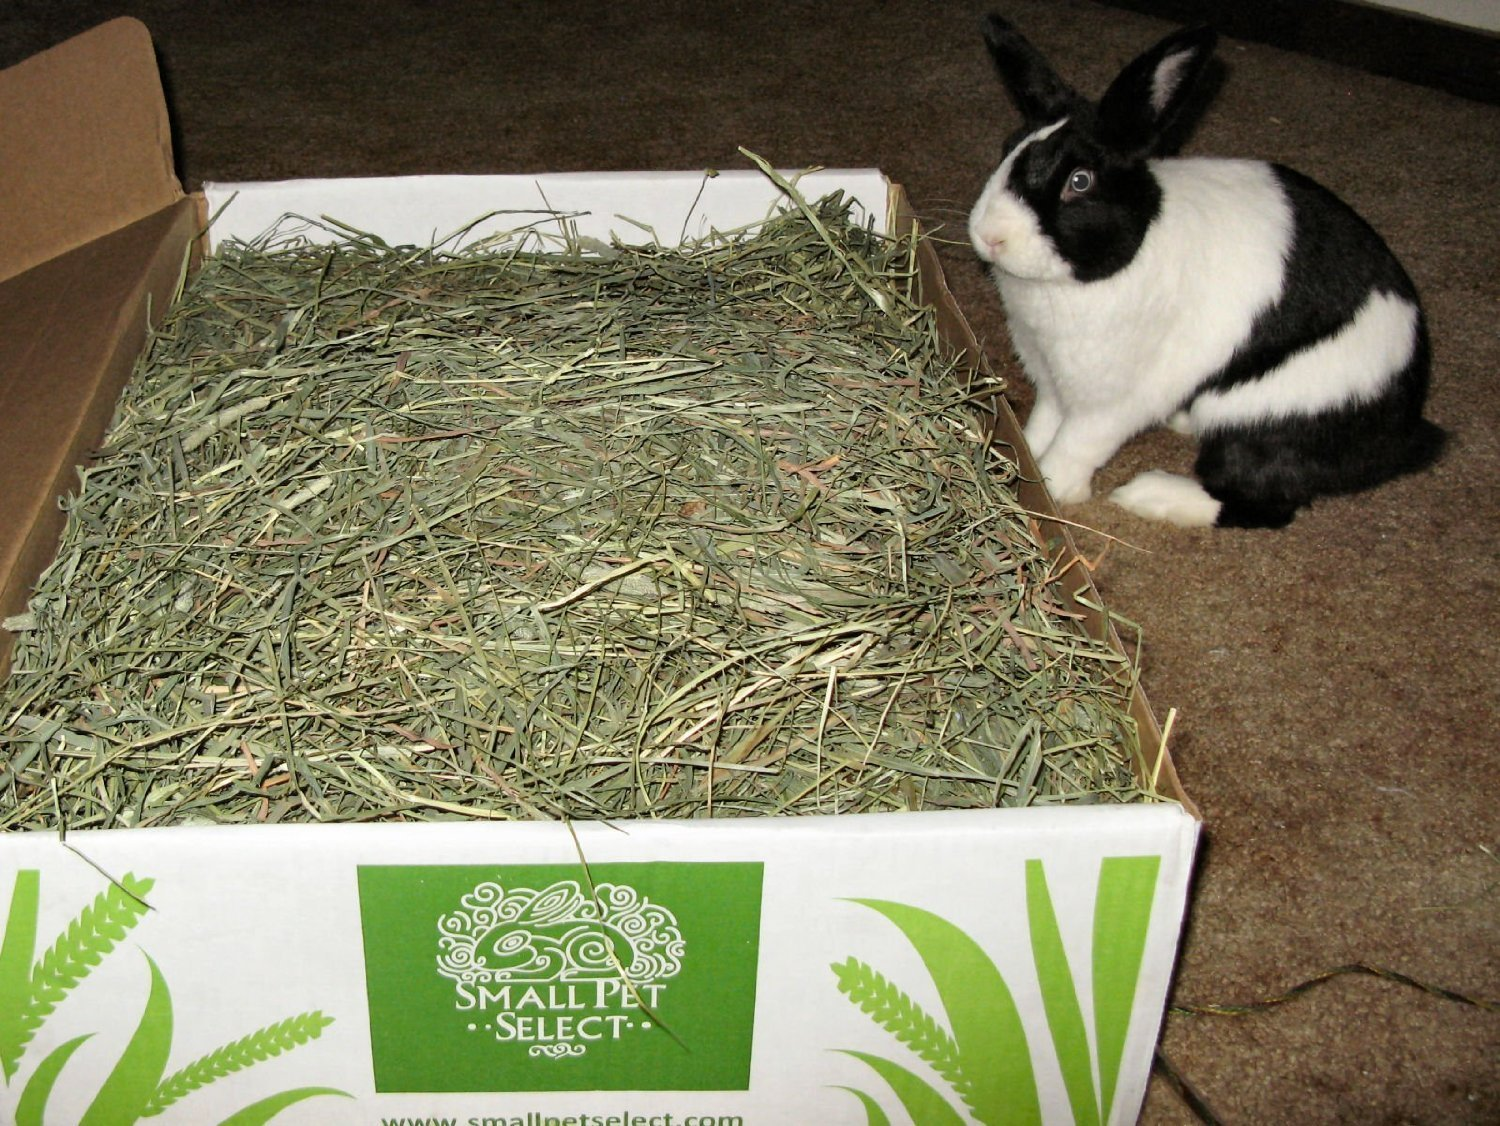 Small Pet Select 2nd Cutting Timothy Hay Pet Food, 5-Pound